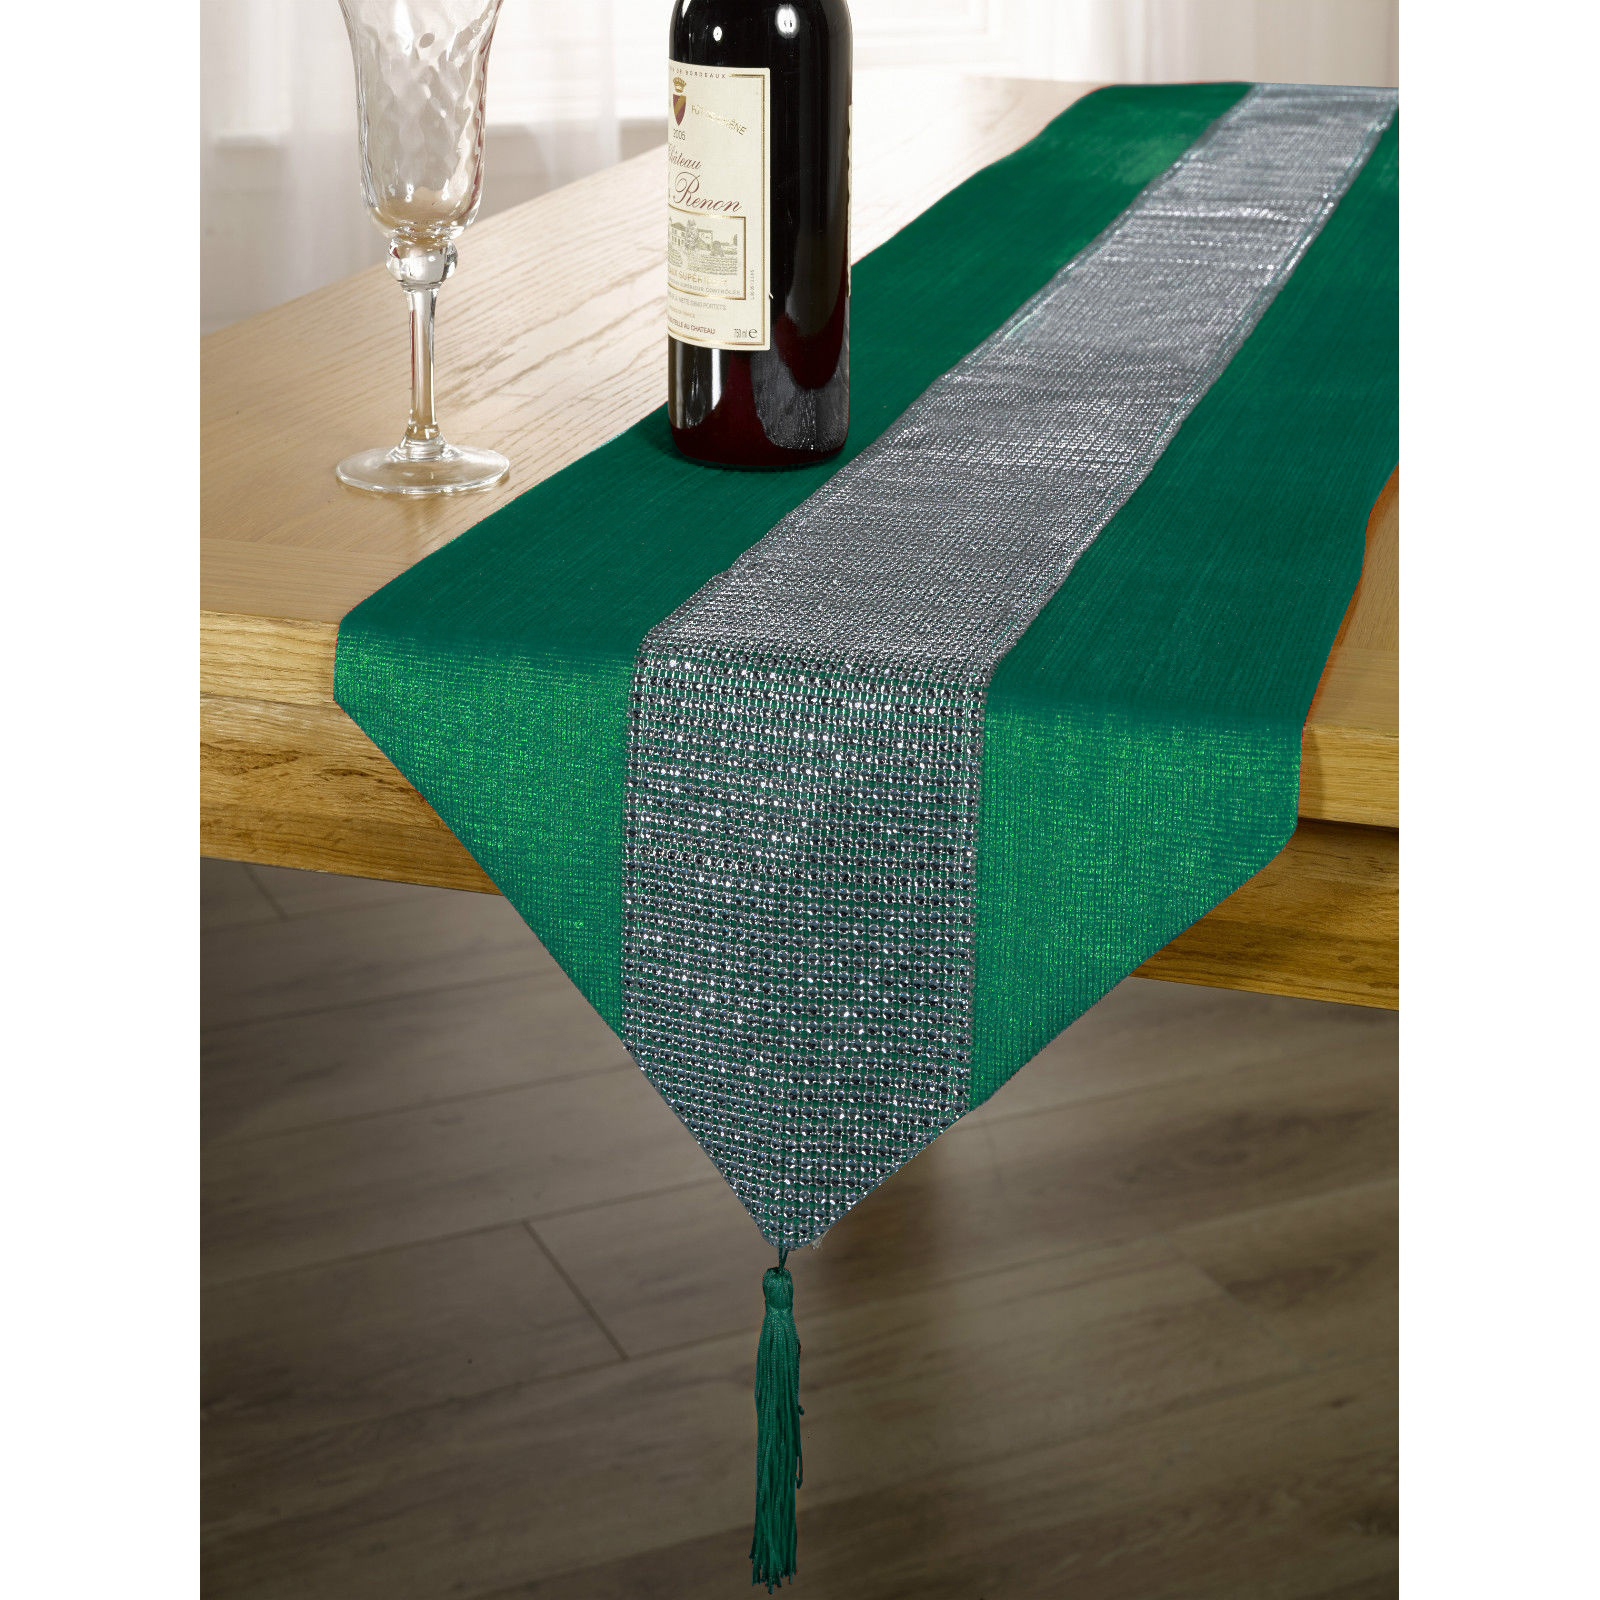 Here at MesaChic Parties we specialize in handmade Mexican table linens! From table runners, tablecloths, napkins or placemats. Bright and fun colors to adorn your Fiesta Party table and to represent the vibrant culture that is Mexico.